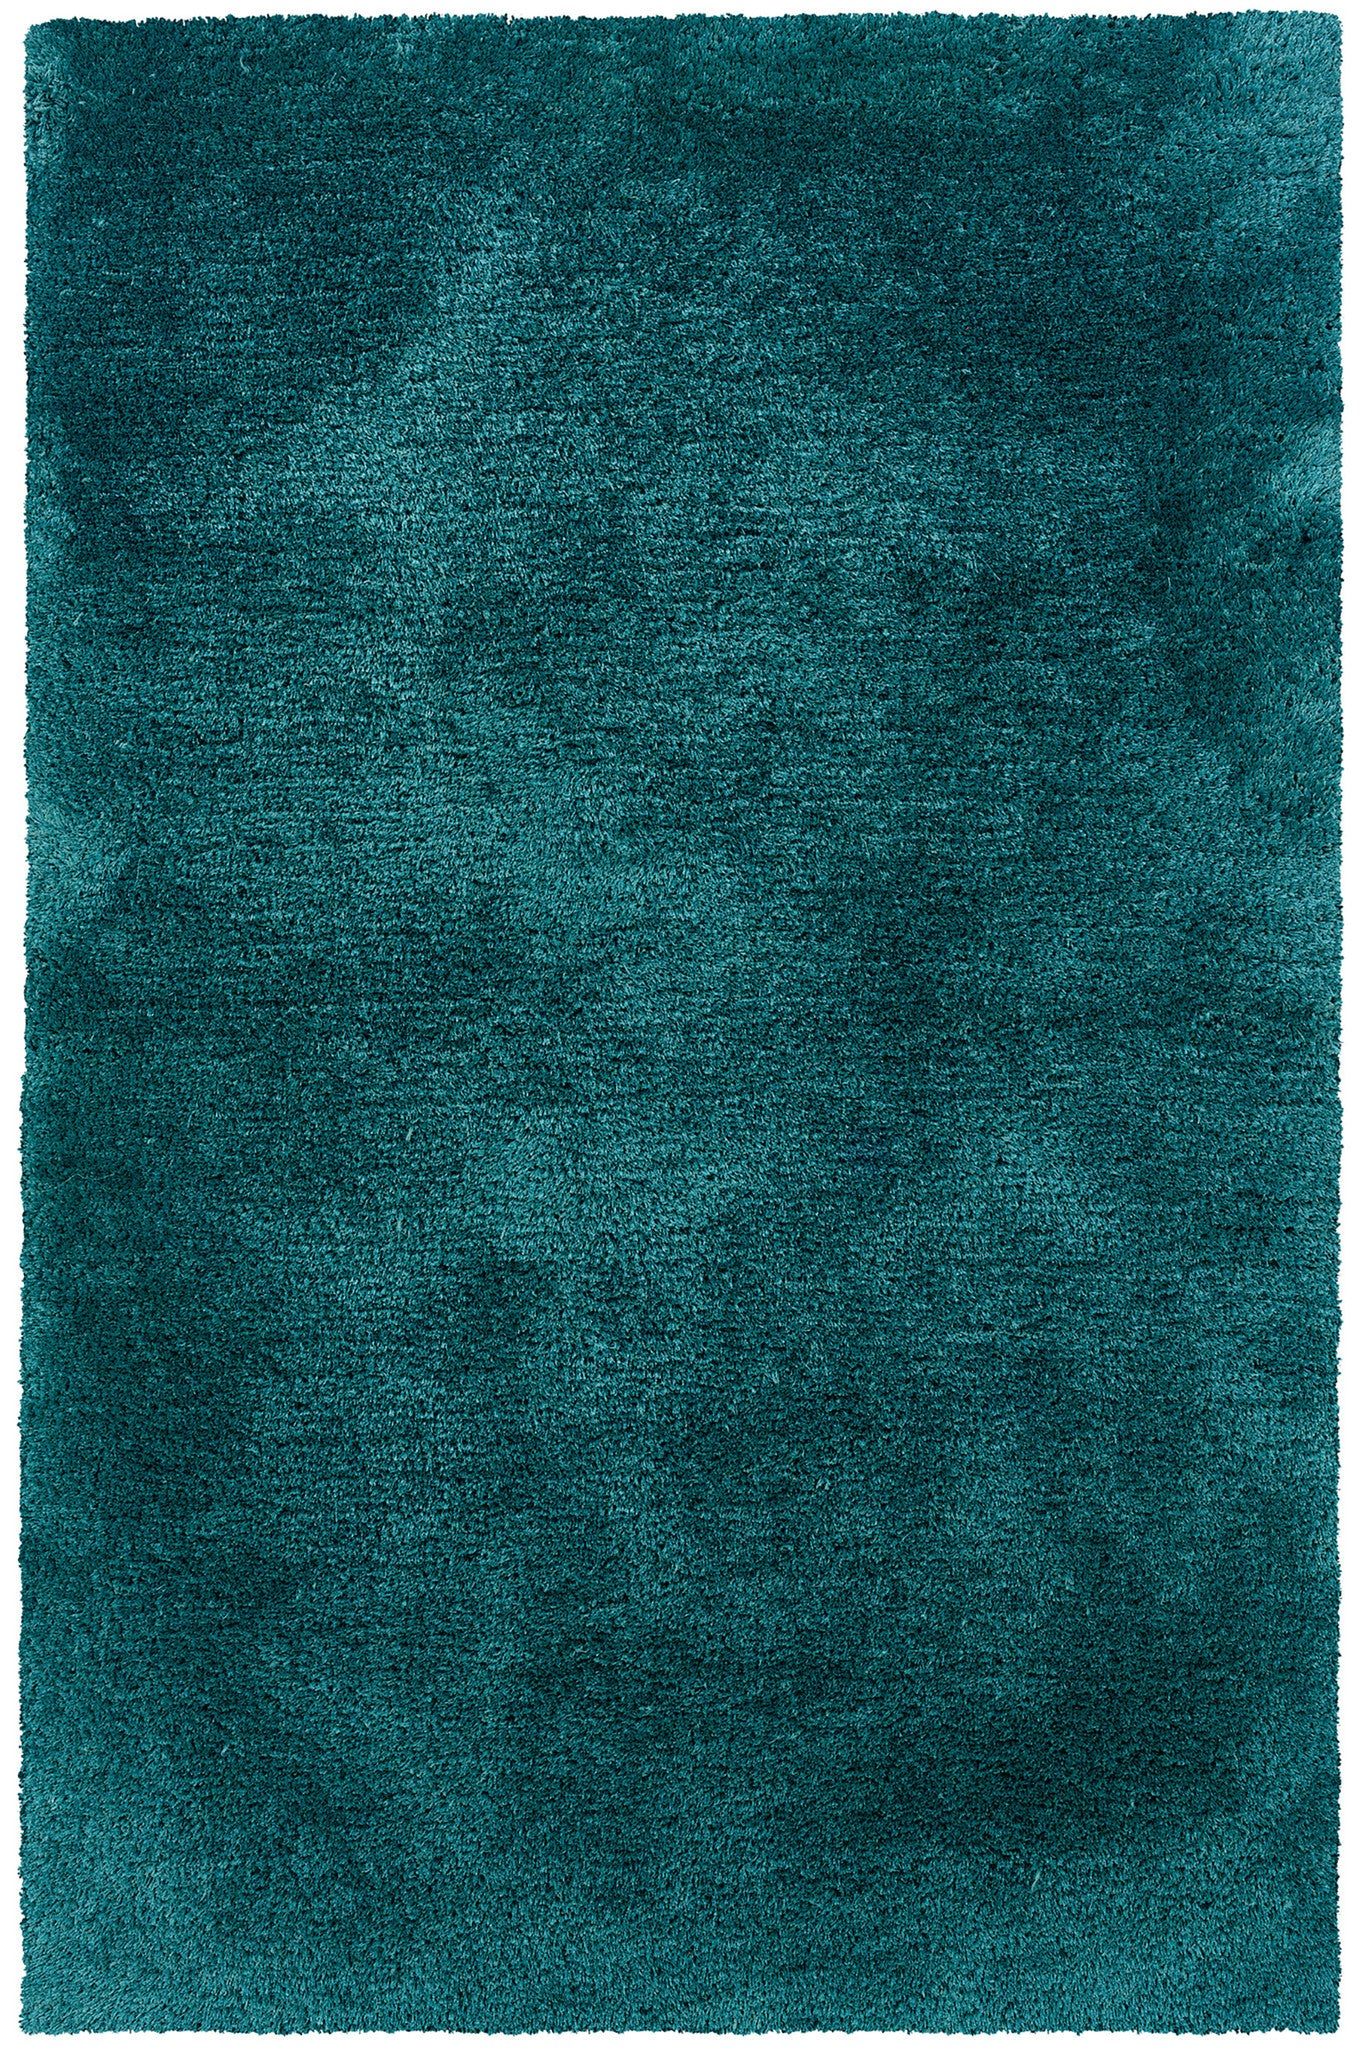 solid teal blue plush shag rug